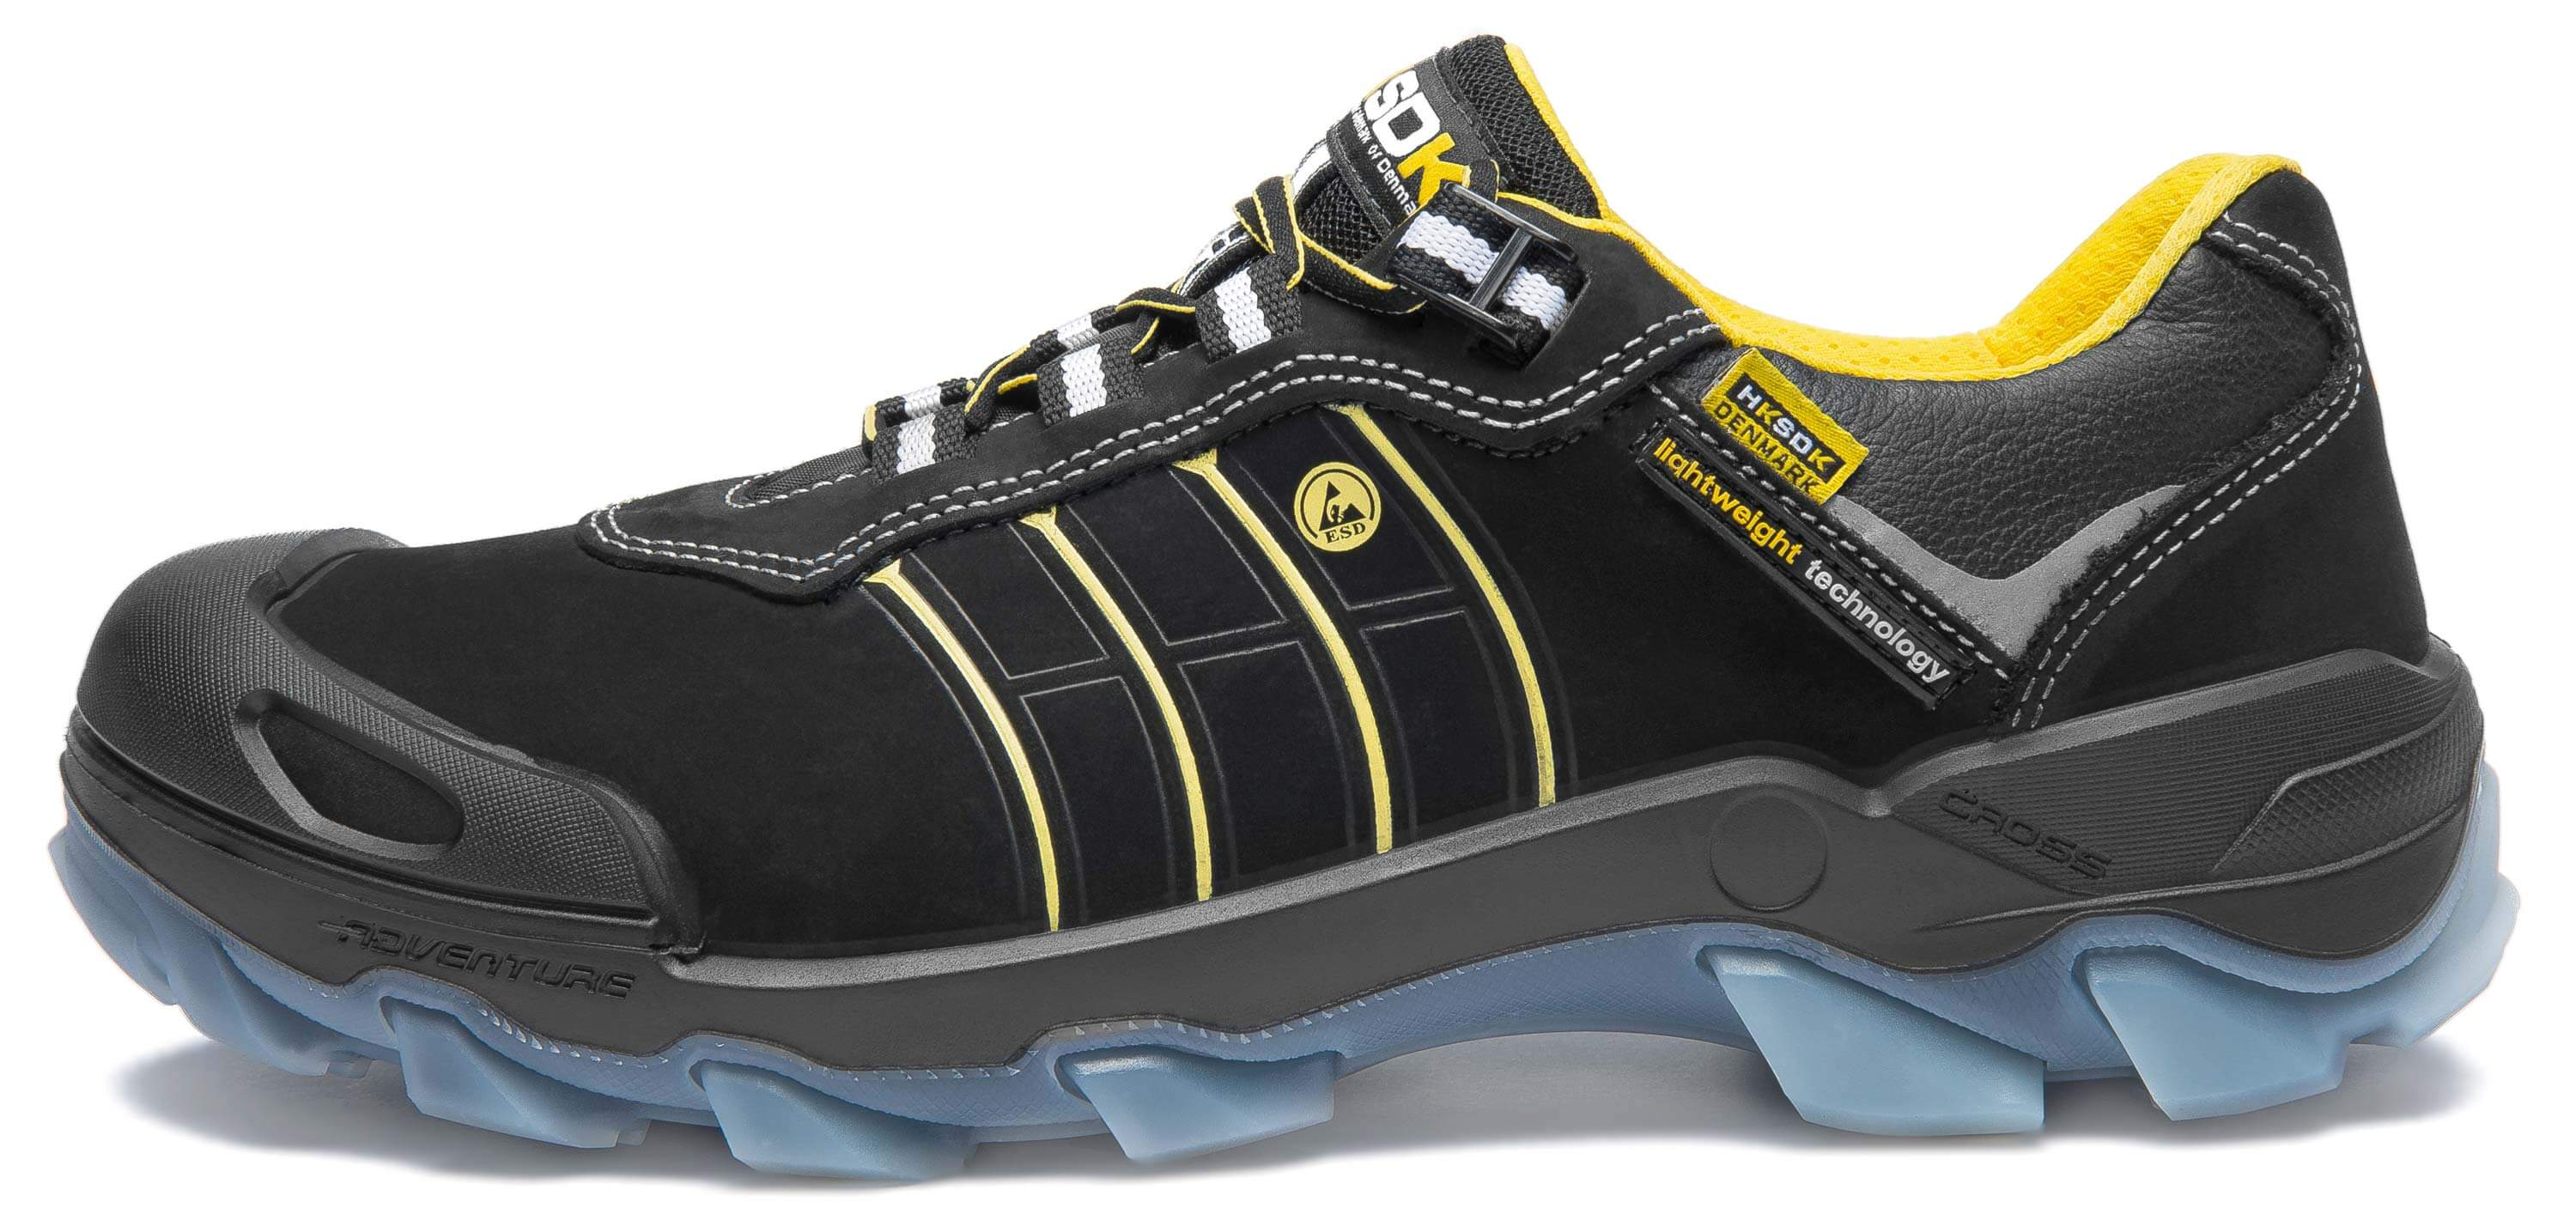 Air Sole Work Shoes